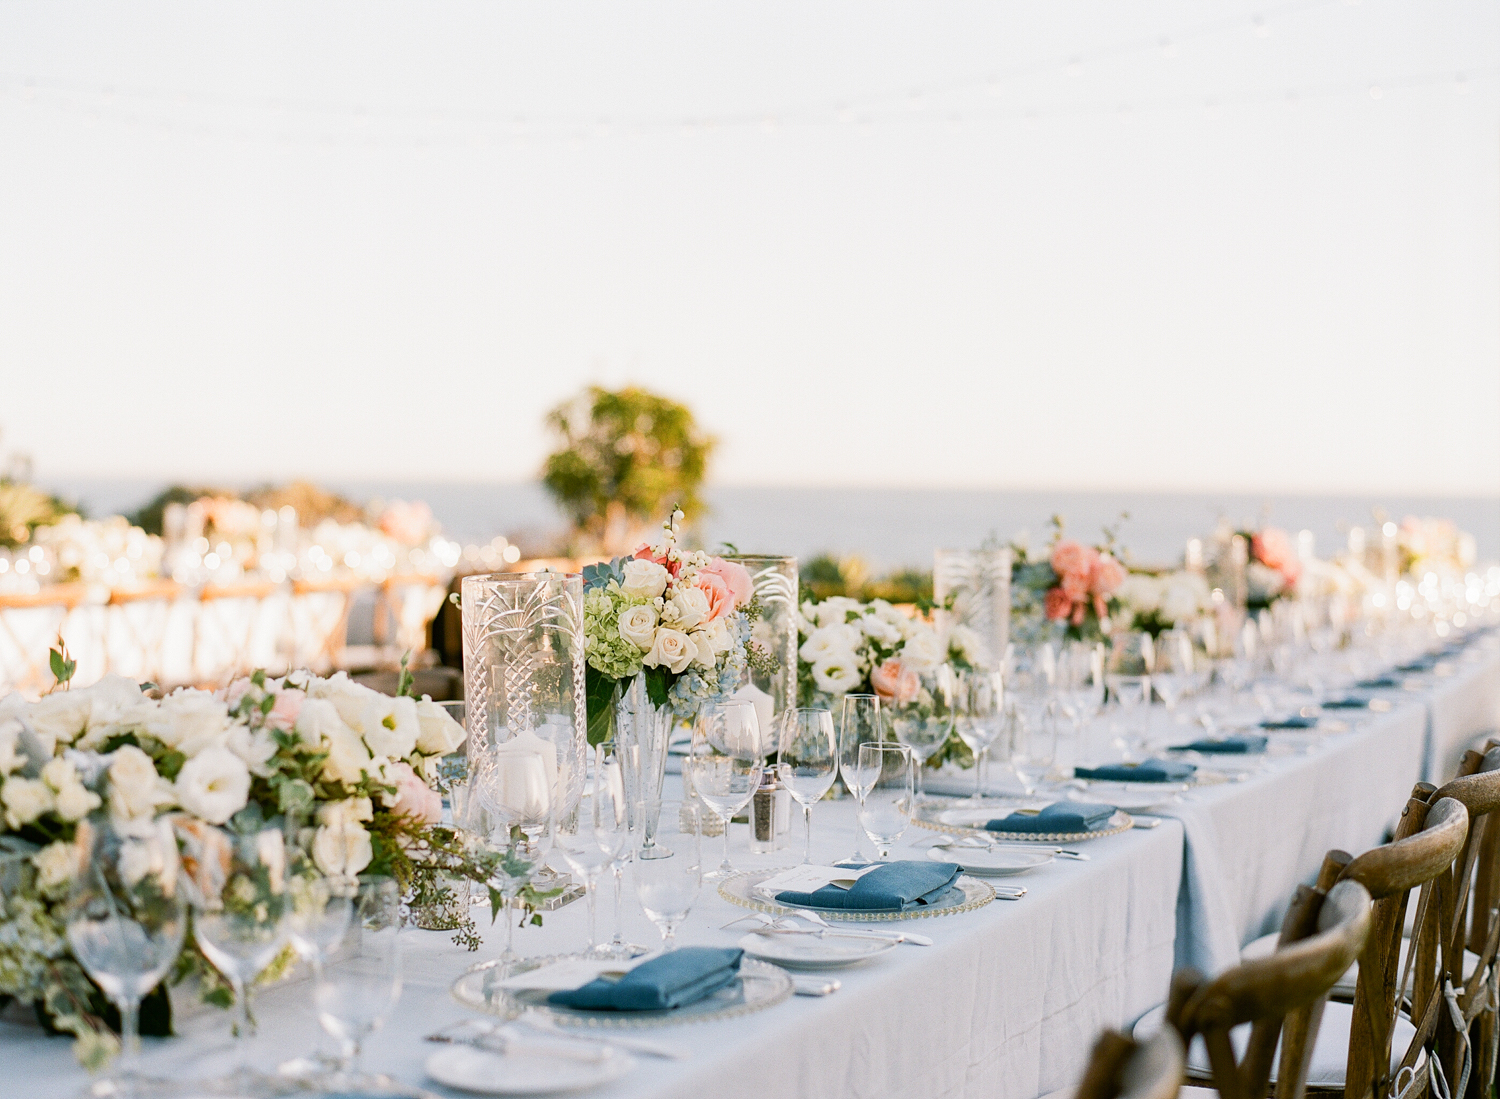 Gorgeous florals and nautical blue linens add to the lovely ocean aesthetic of the Laguna Beach reception; photo by Sylvie Gil